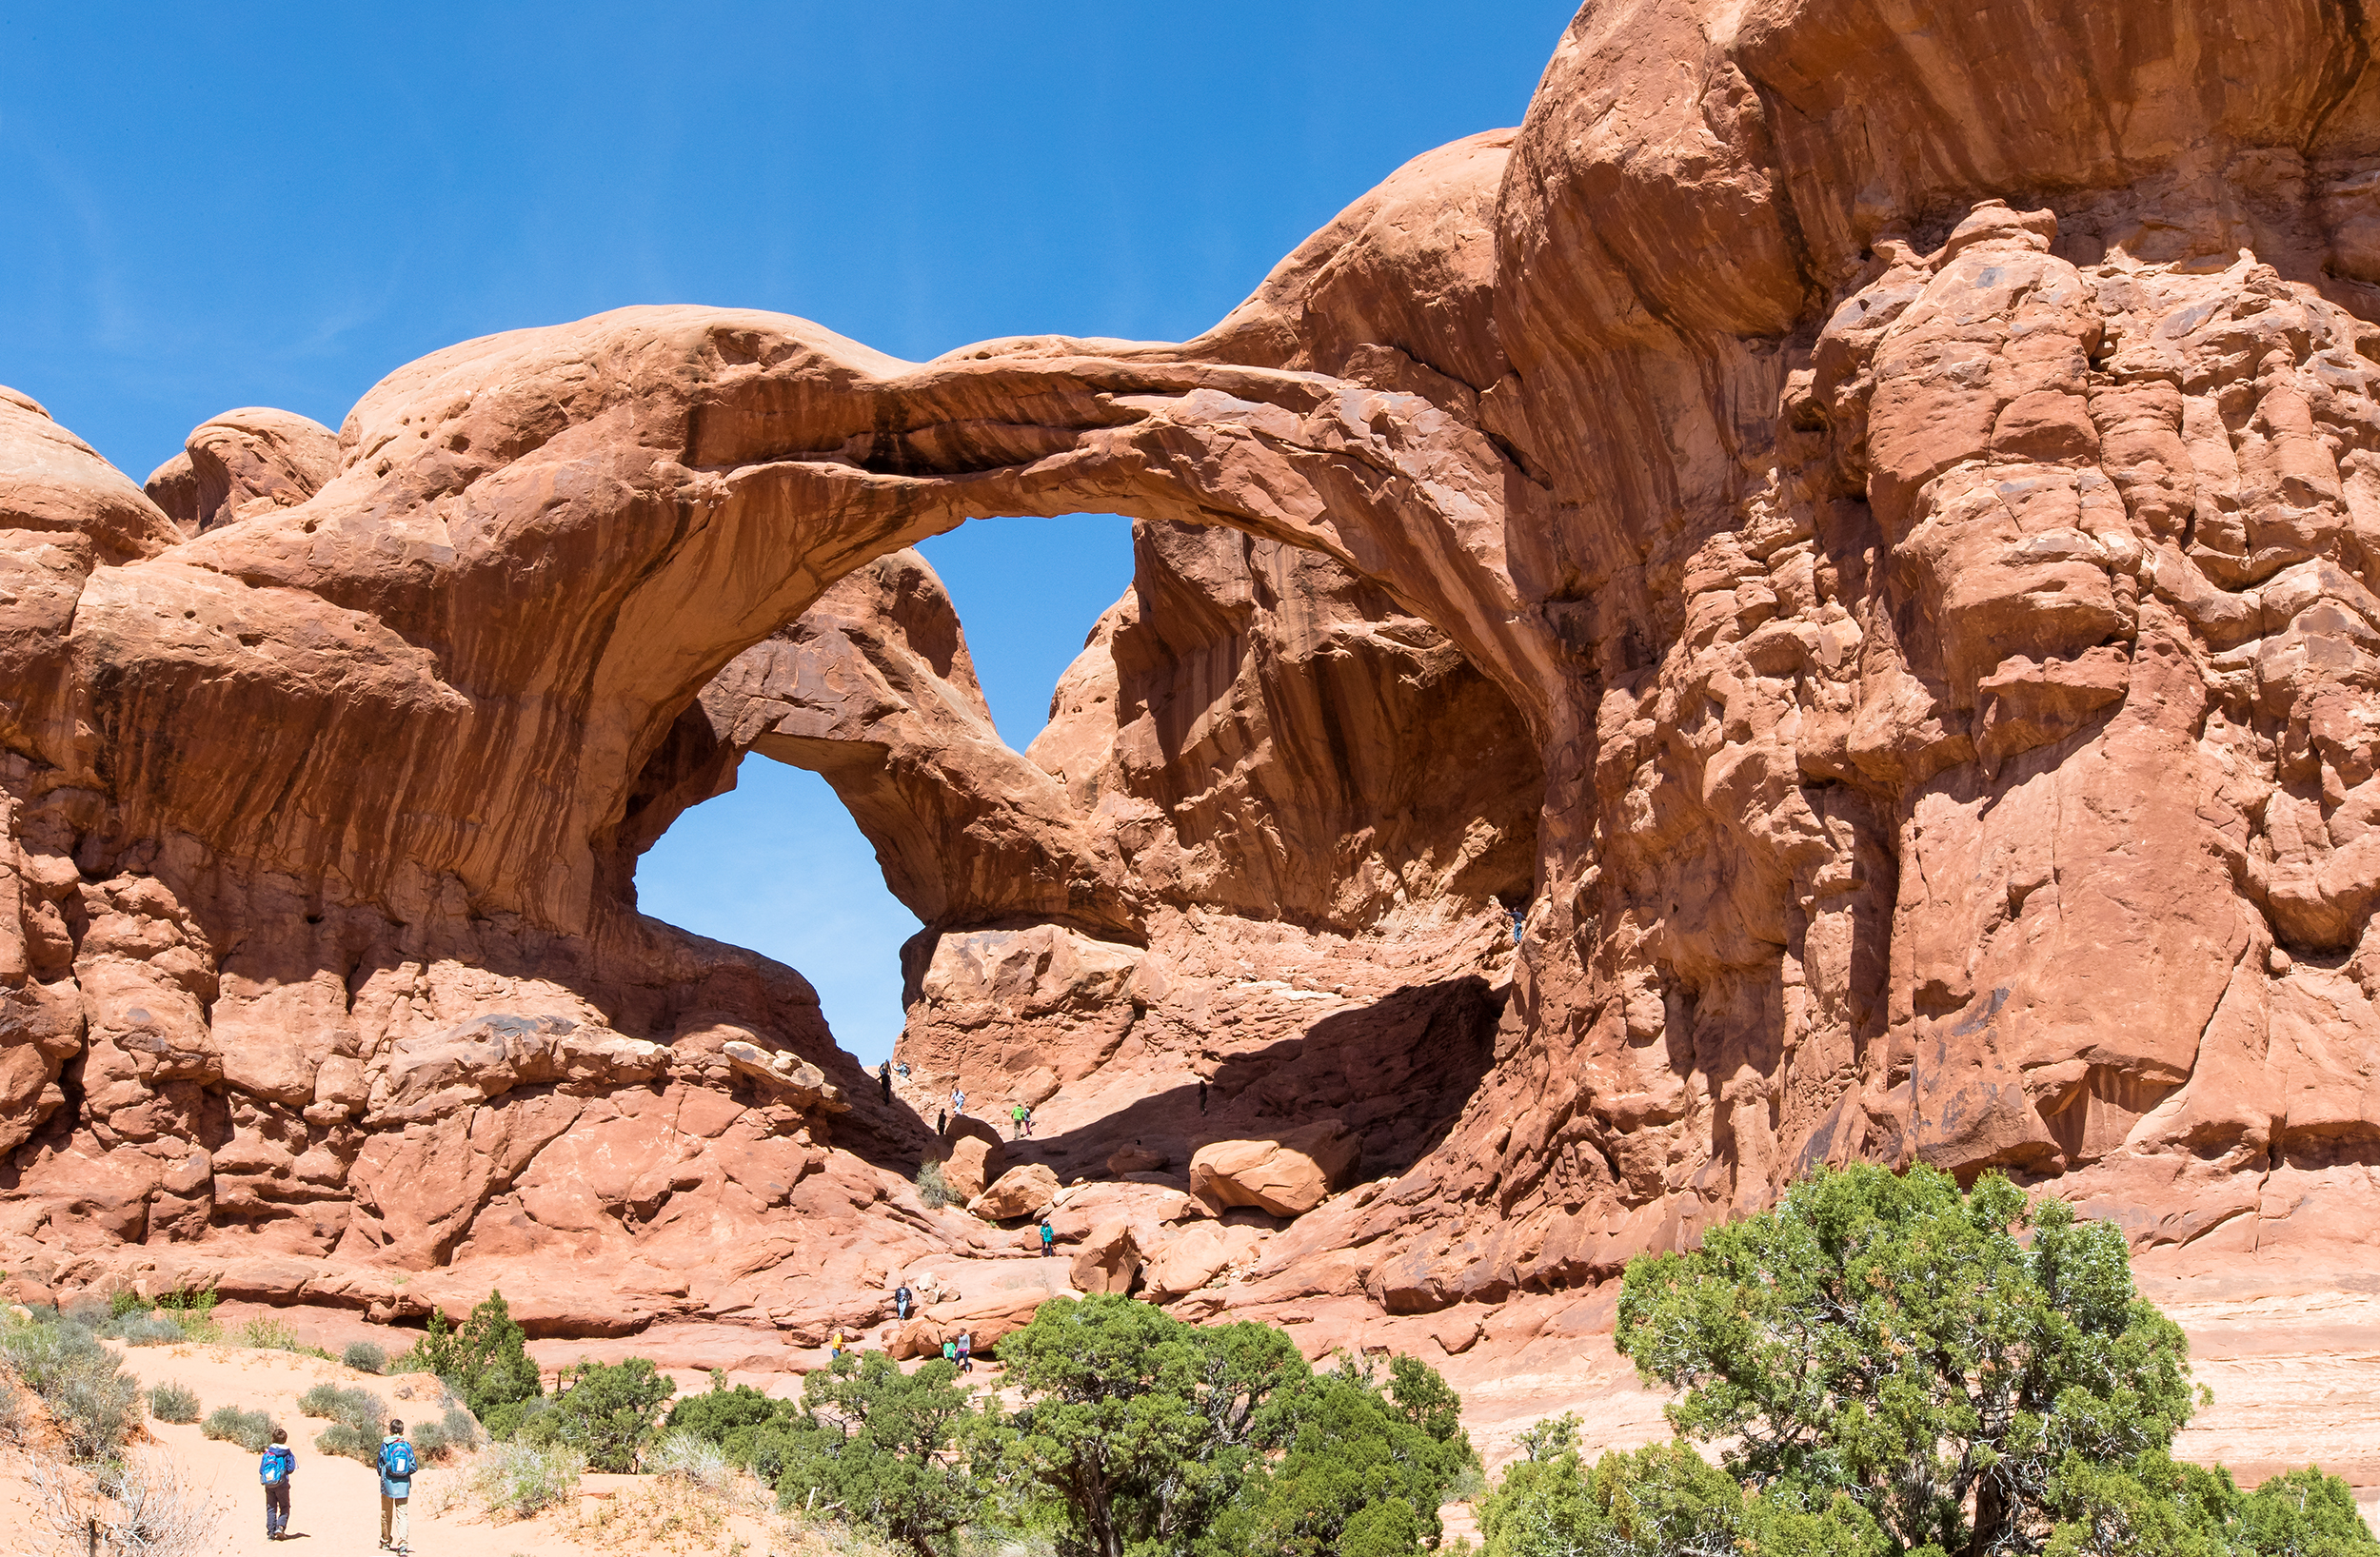 NATLPARKING_travel_rv_adventure_archesnationalpark_2321_WB